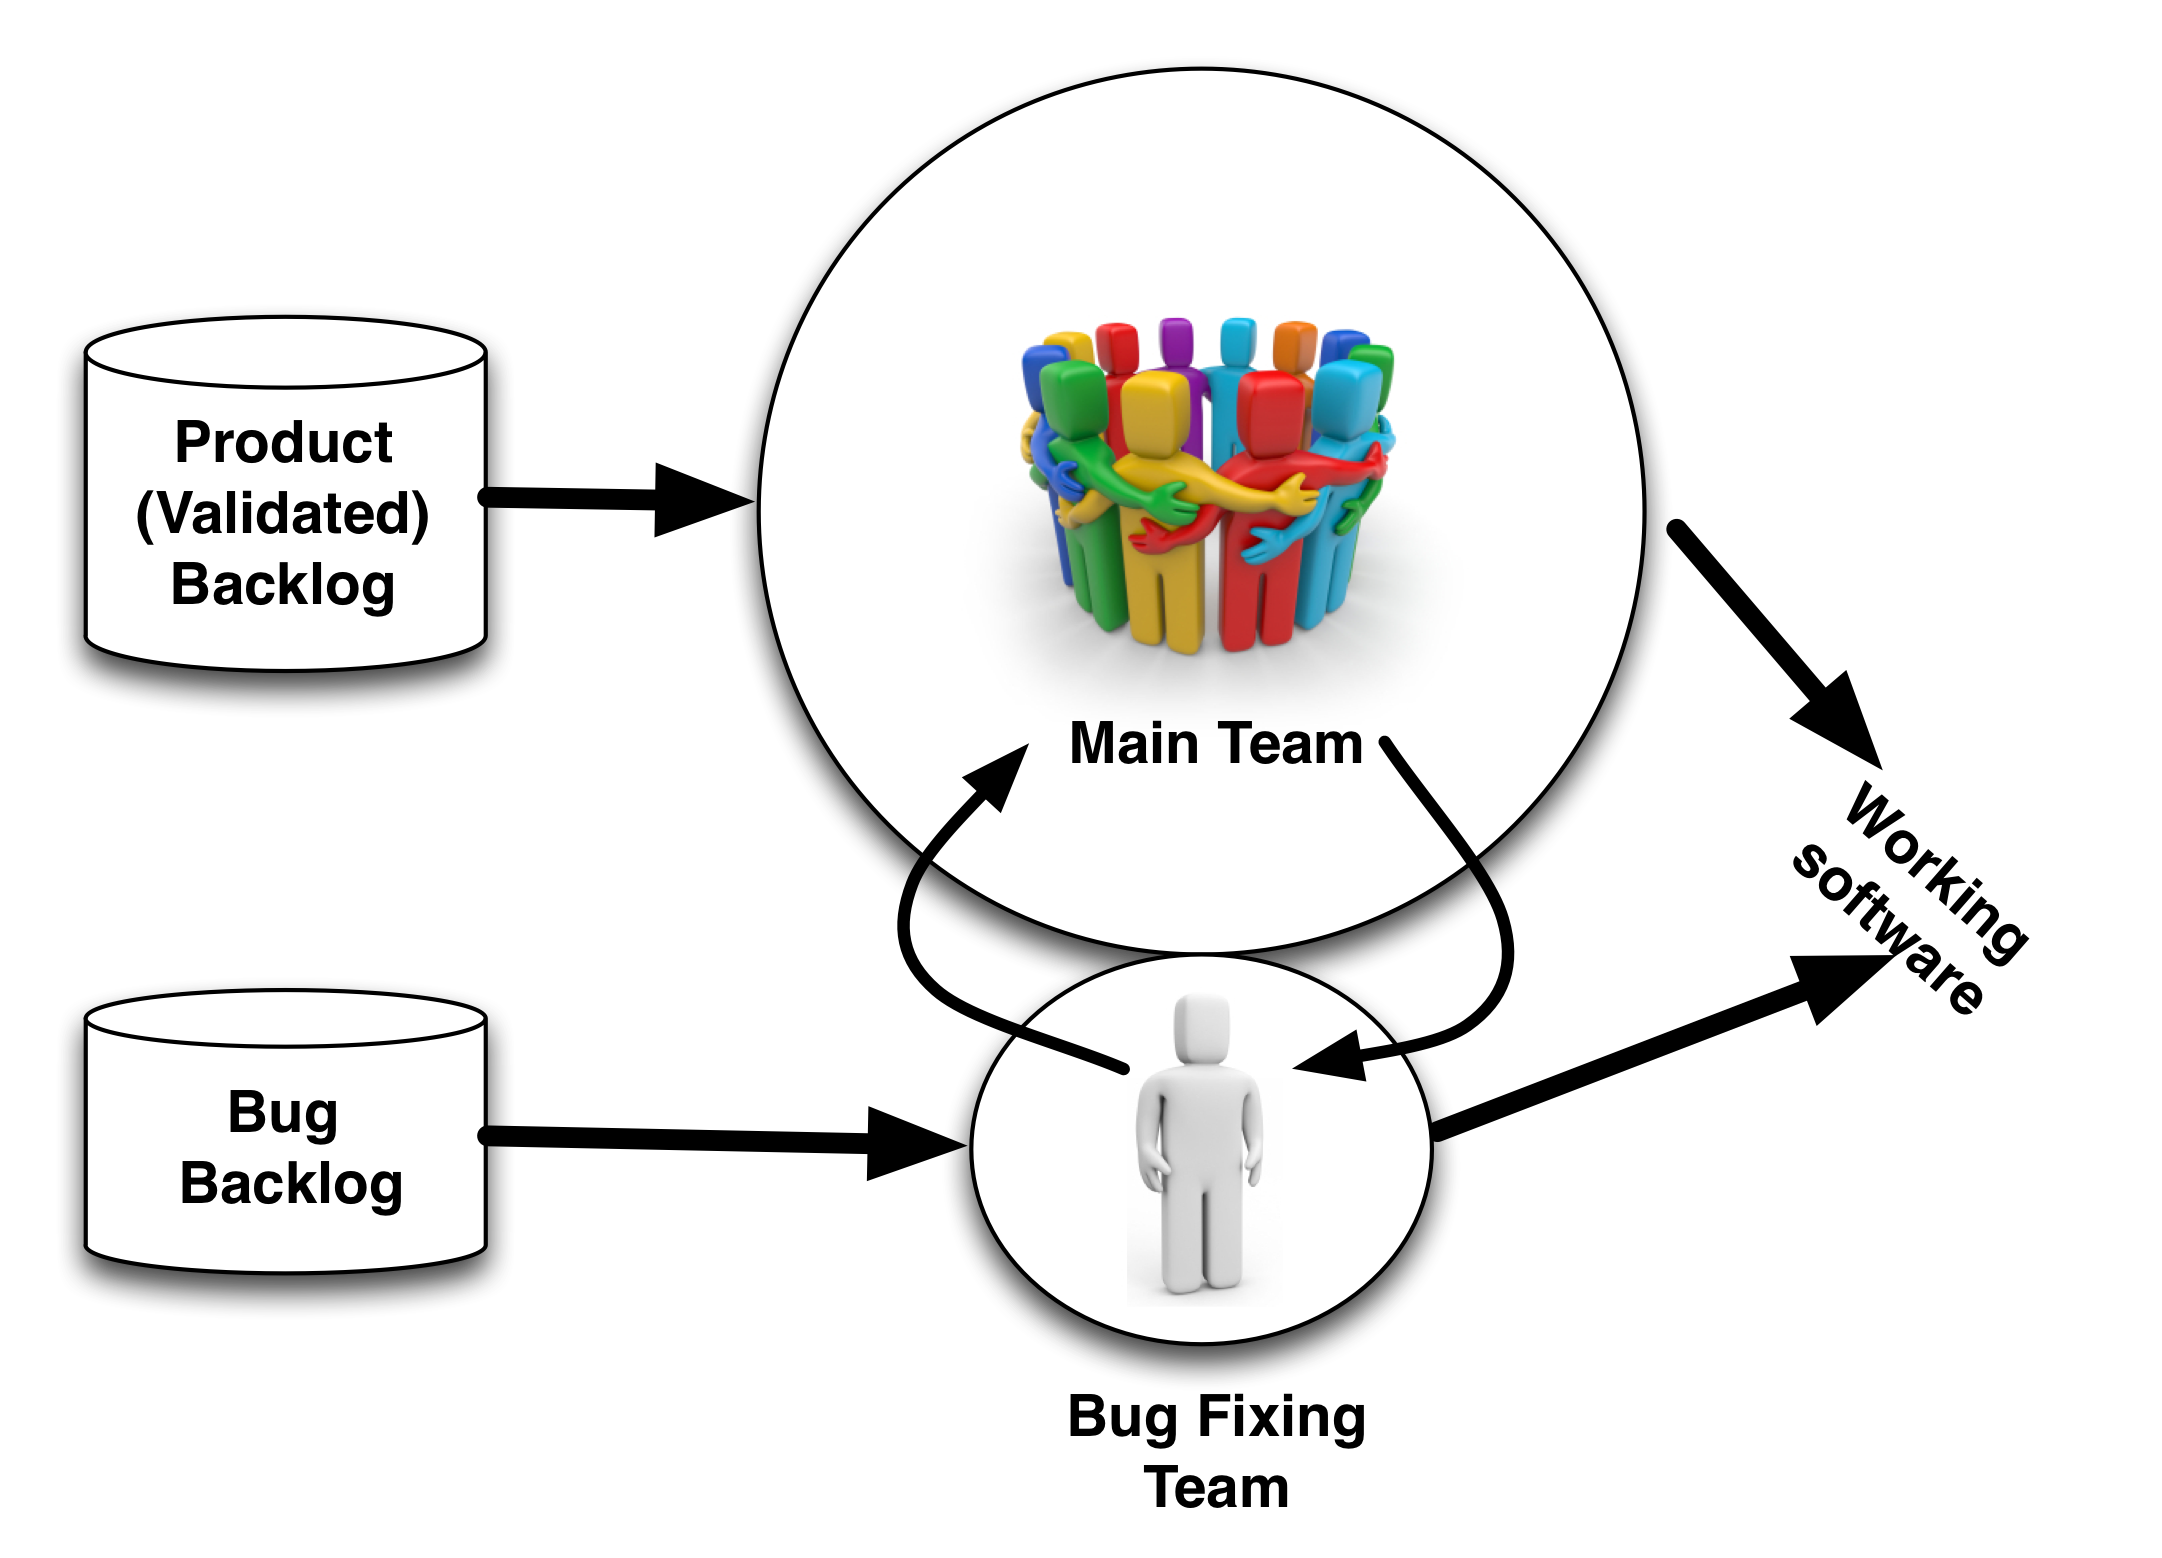 Main team focus on new product work while bug fixing team work on bugs